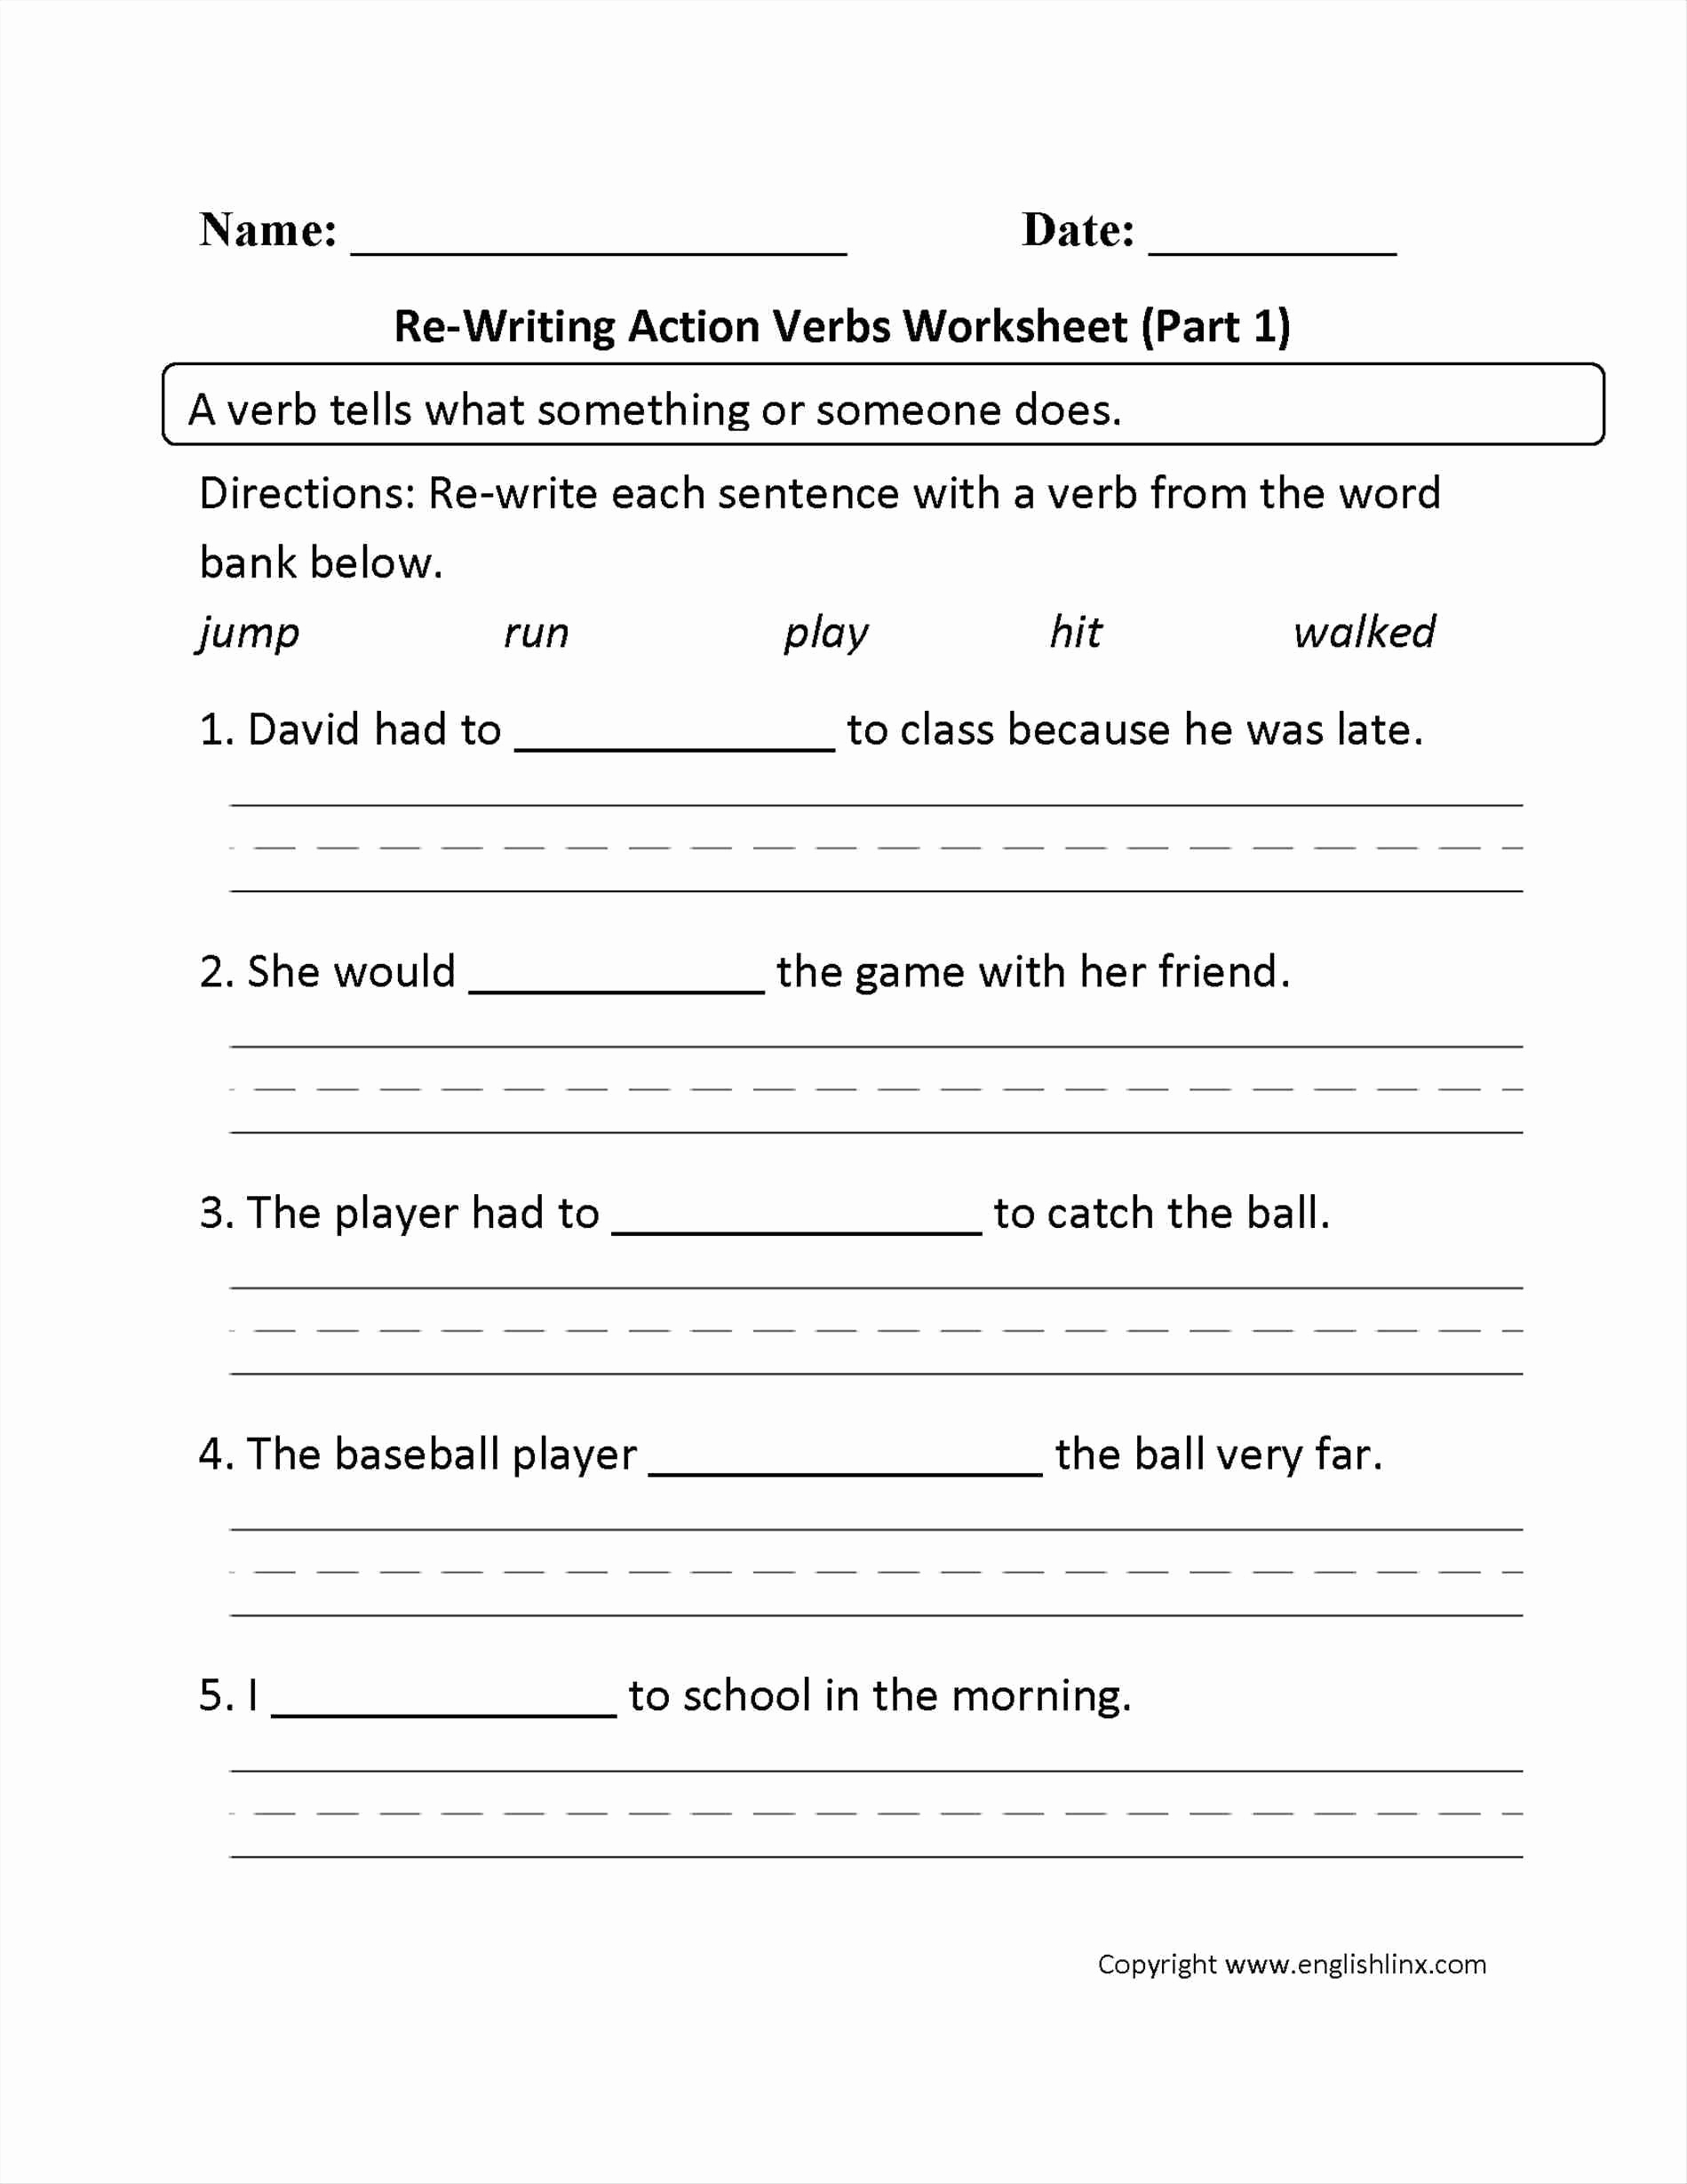 Middle School Inference Worksheets Fresh 20 Inference Worksheets Middle School